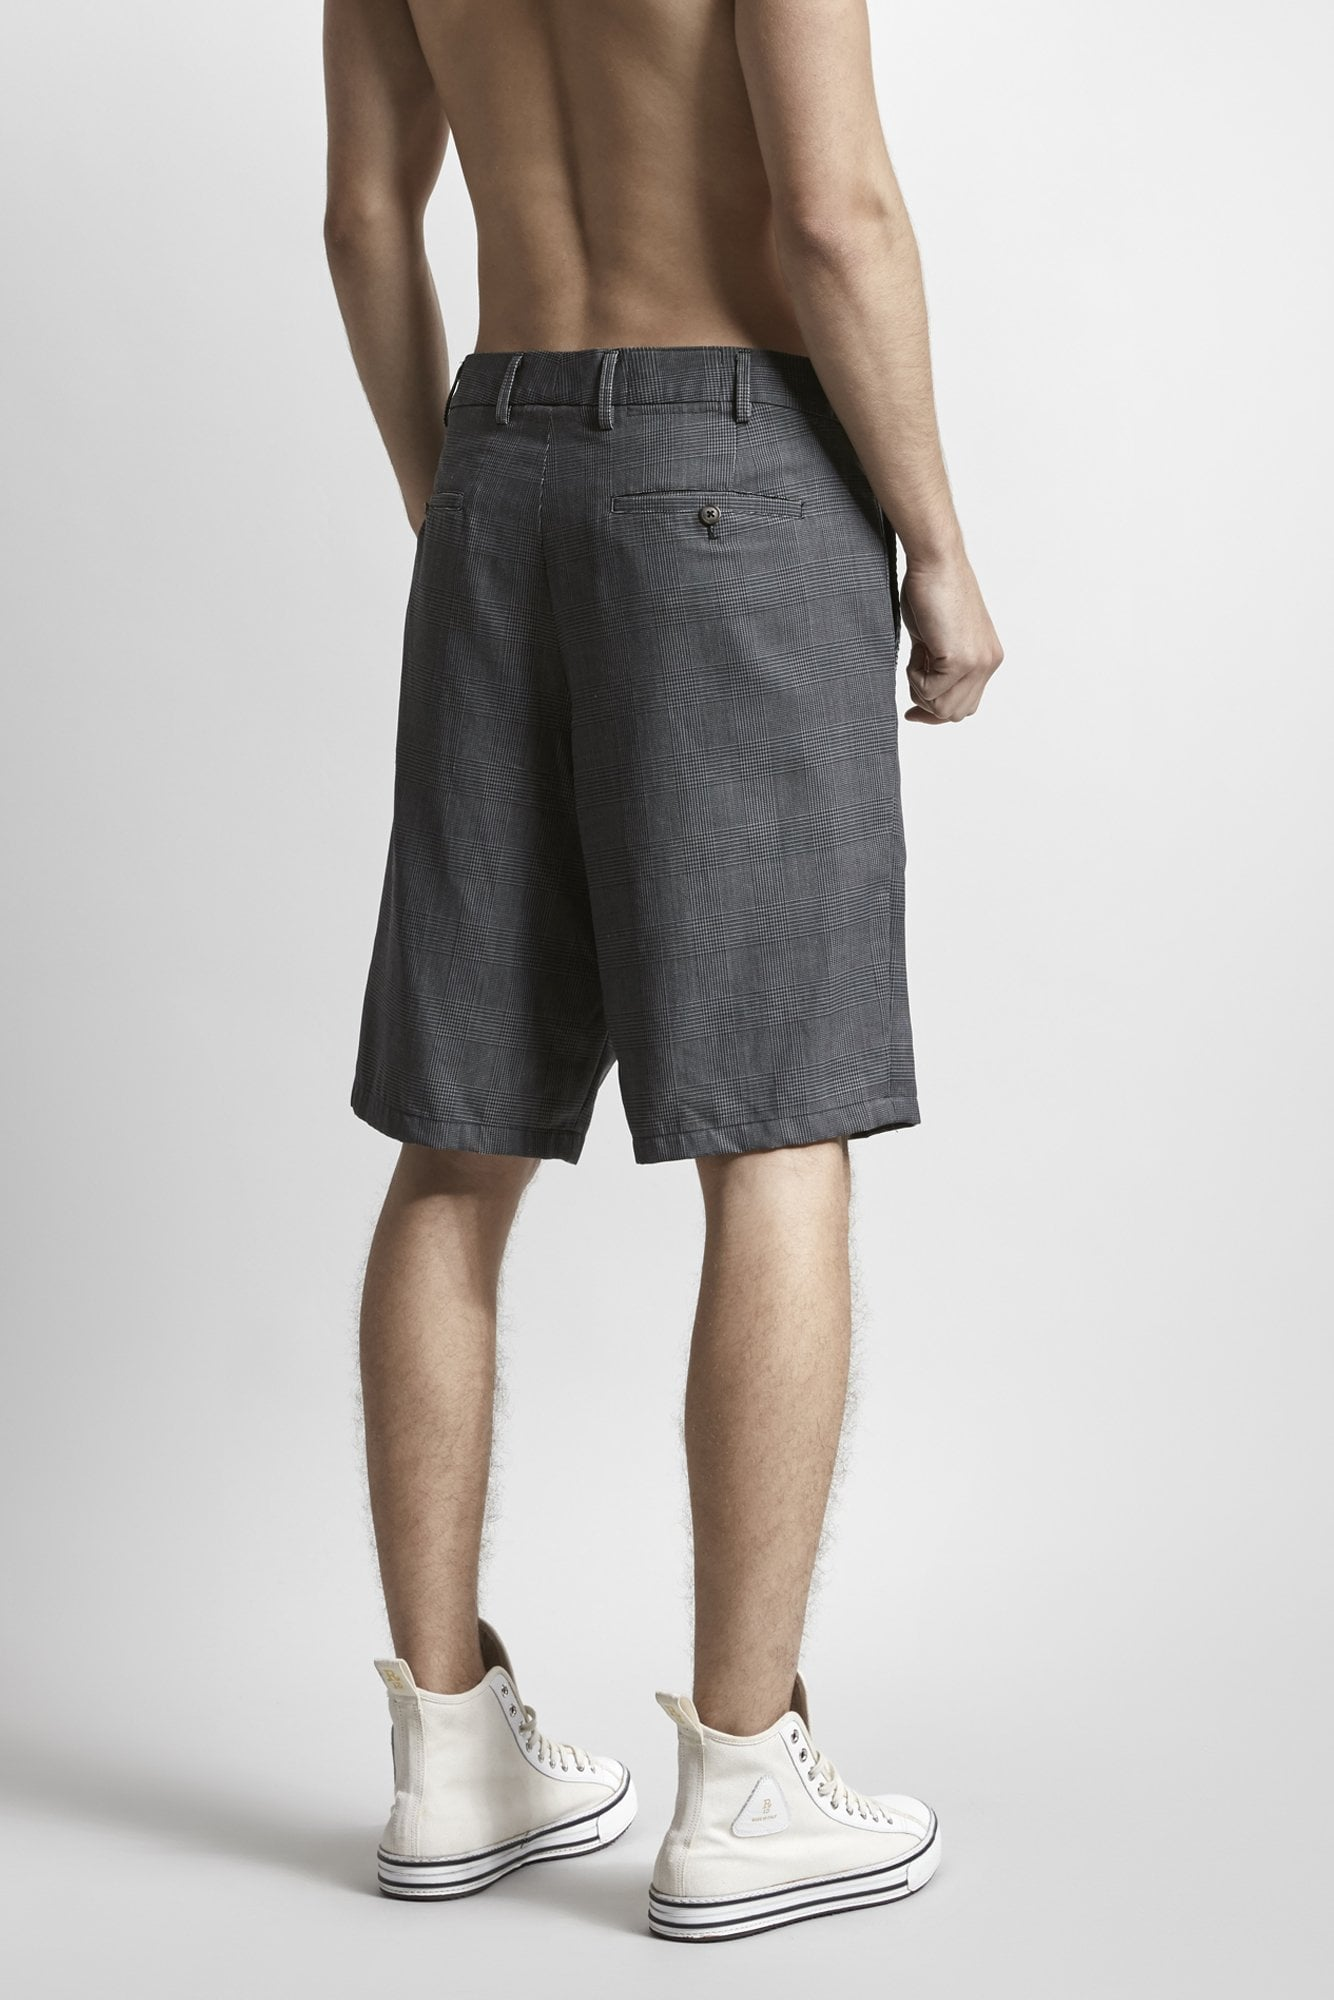 Crossover Short - Charcoal